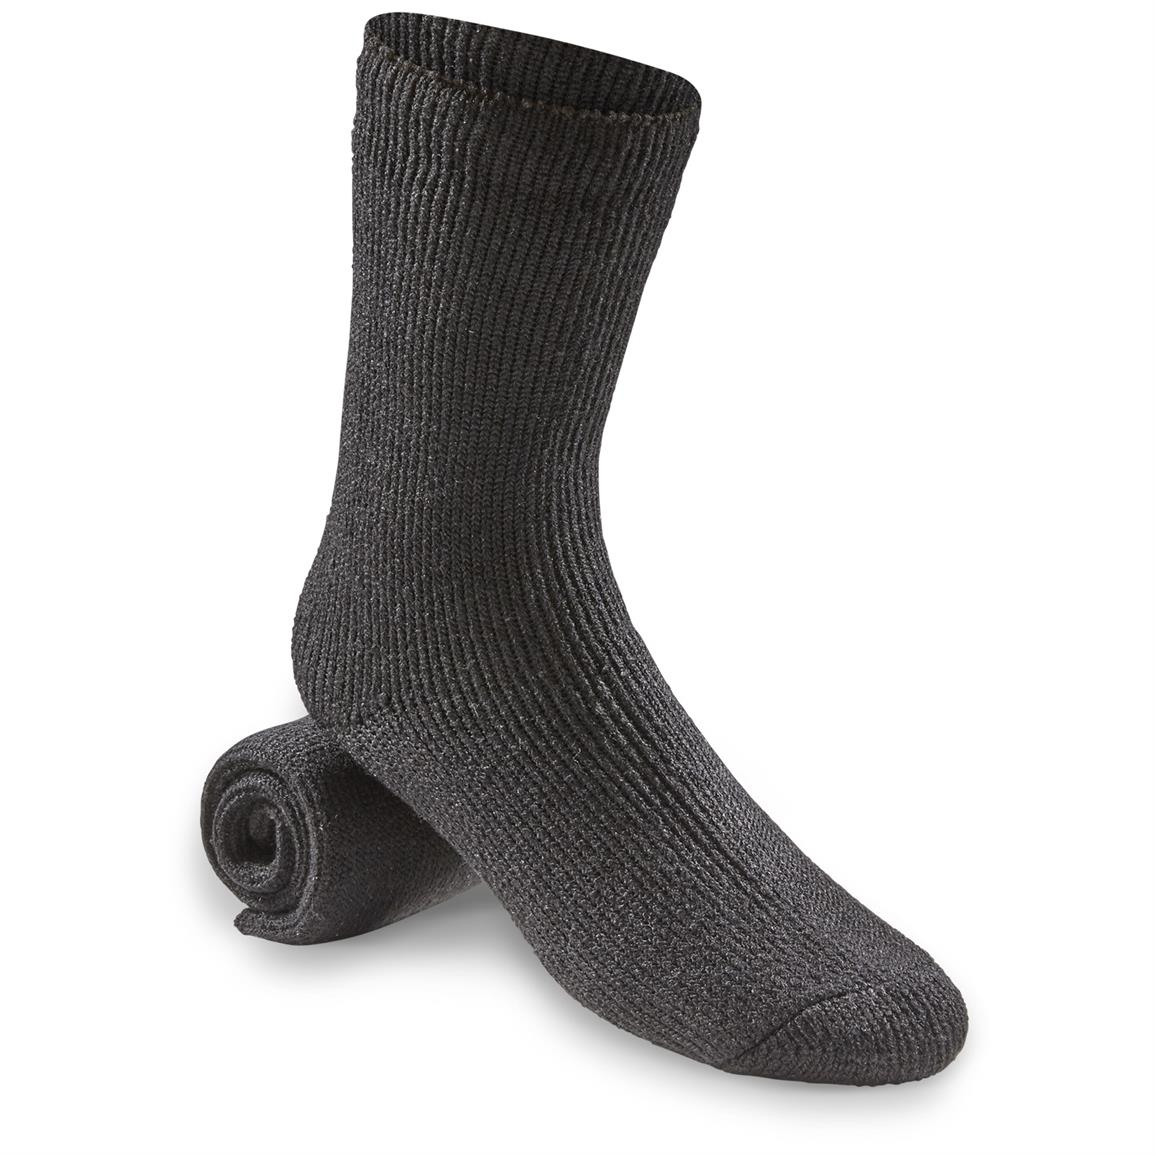 Heat Holder Women's Thermal Socks